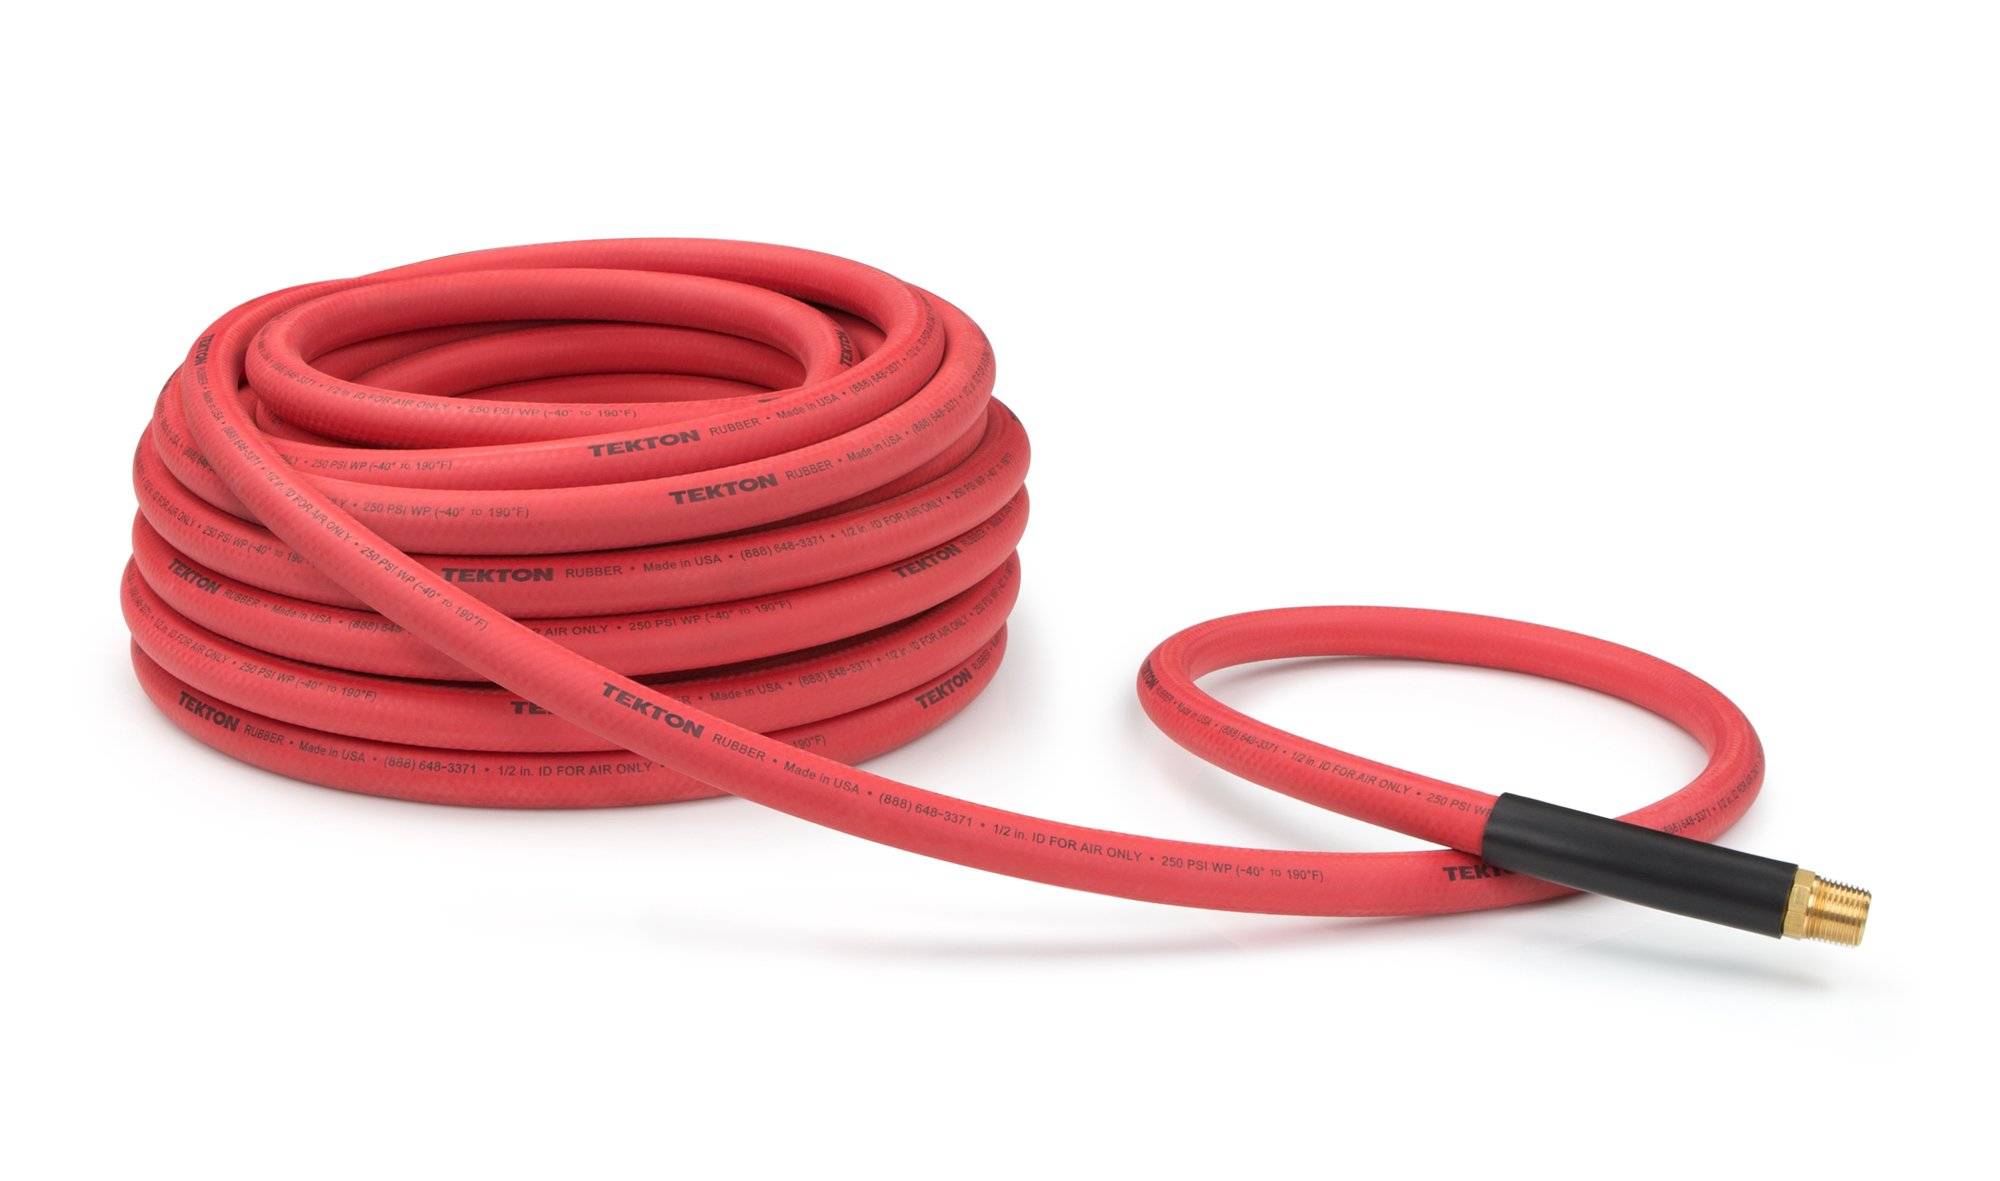 TEKTON 46367 1/2-Inch I.D. by 50-Foot 250 PSI Rubber Air Hose with 1/2-Inch MPT Ends and Bend Restrictors by TEKTON